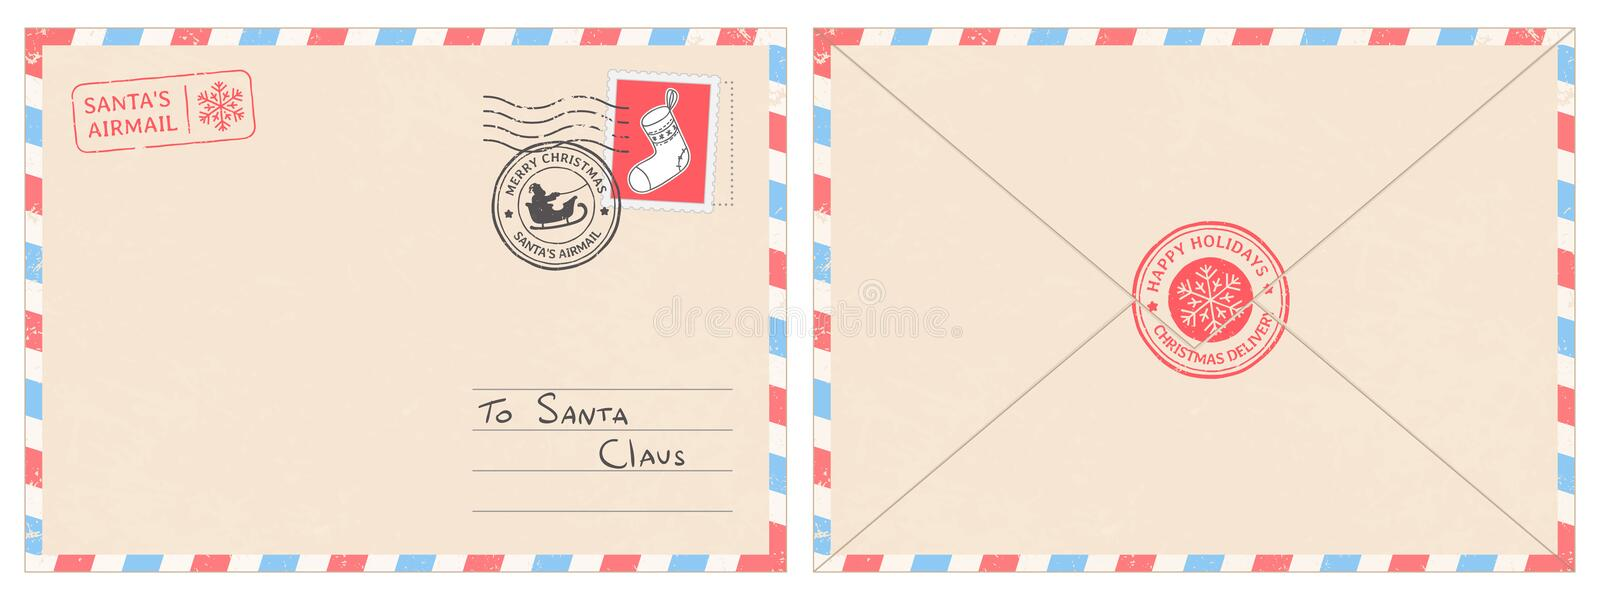 Dear santa claus mail envelope. Christmas surprise letter, child postcard with north pole postmark cachet vector royalty free illustration